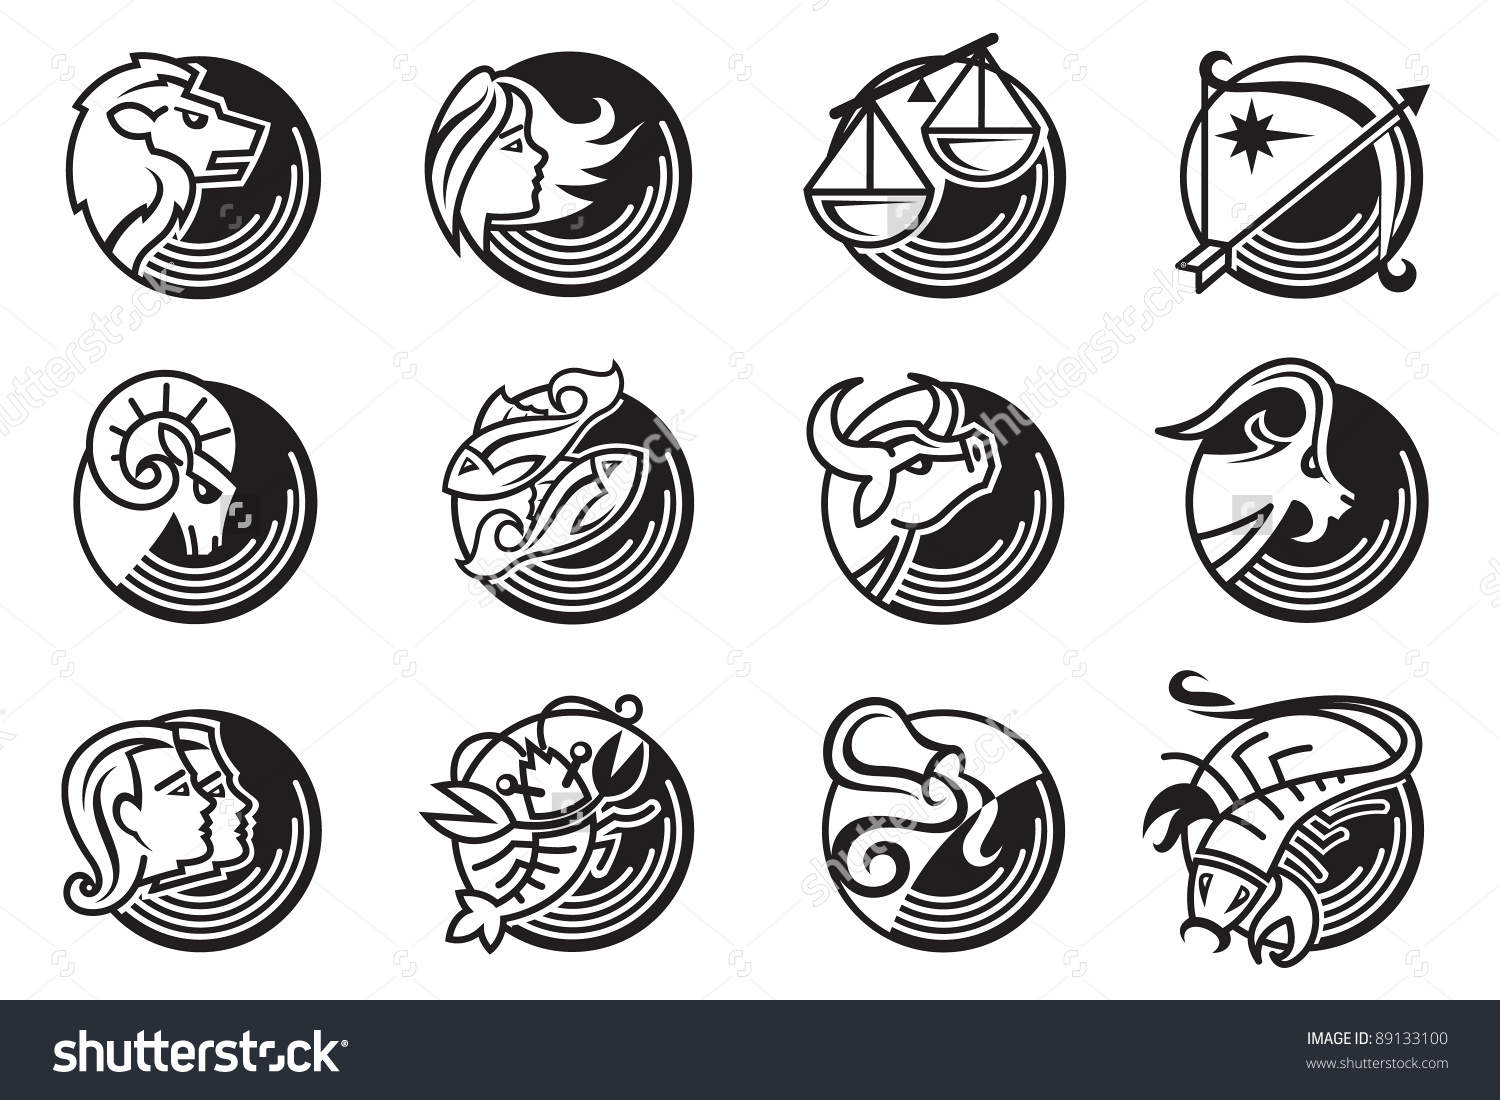 Zodiac signs images clipart image download zodiac sign | Clipart Panda - Free Clipart Images image download